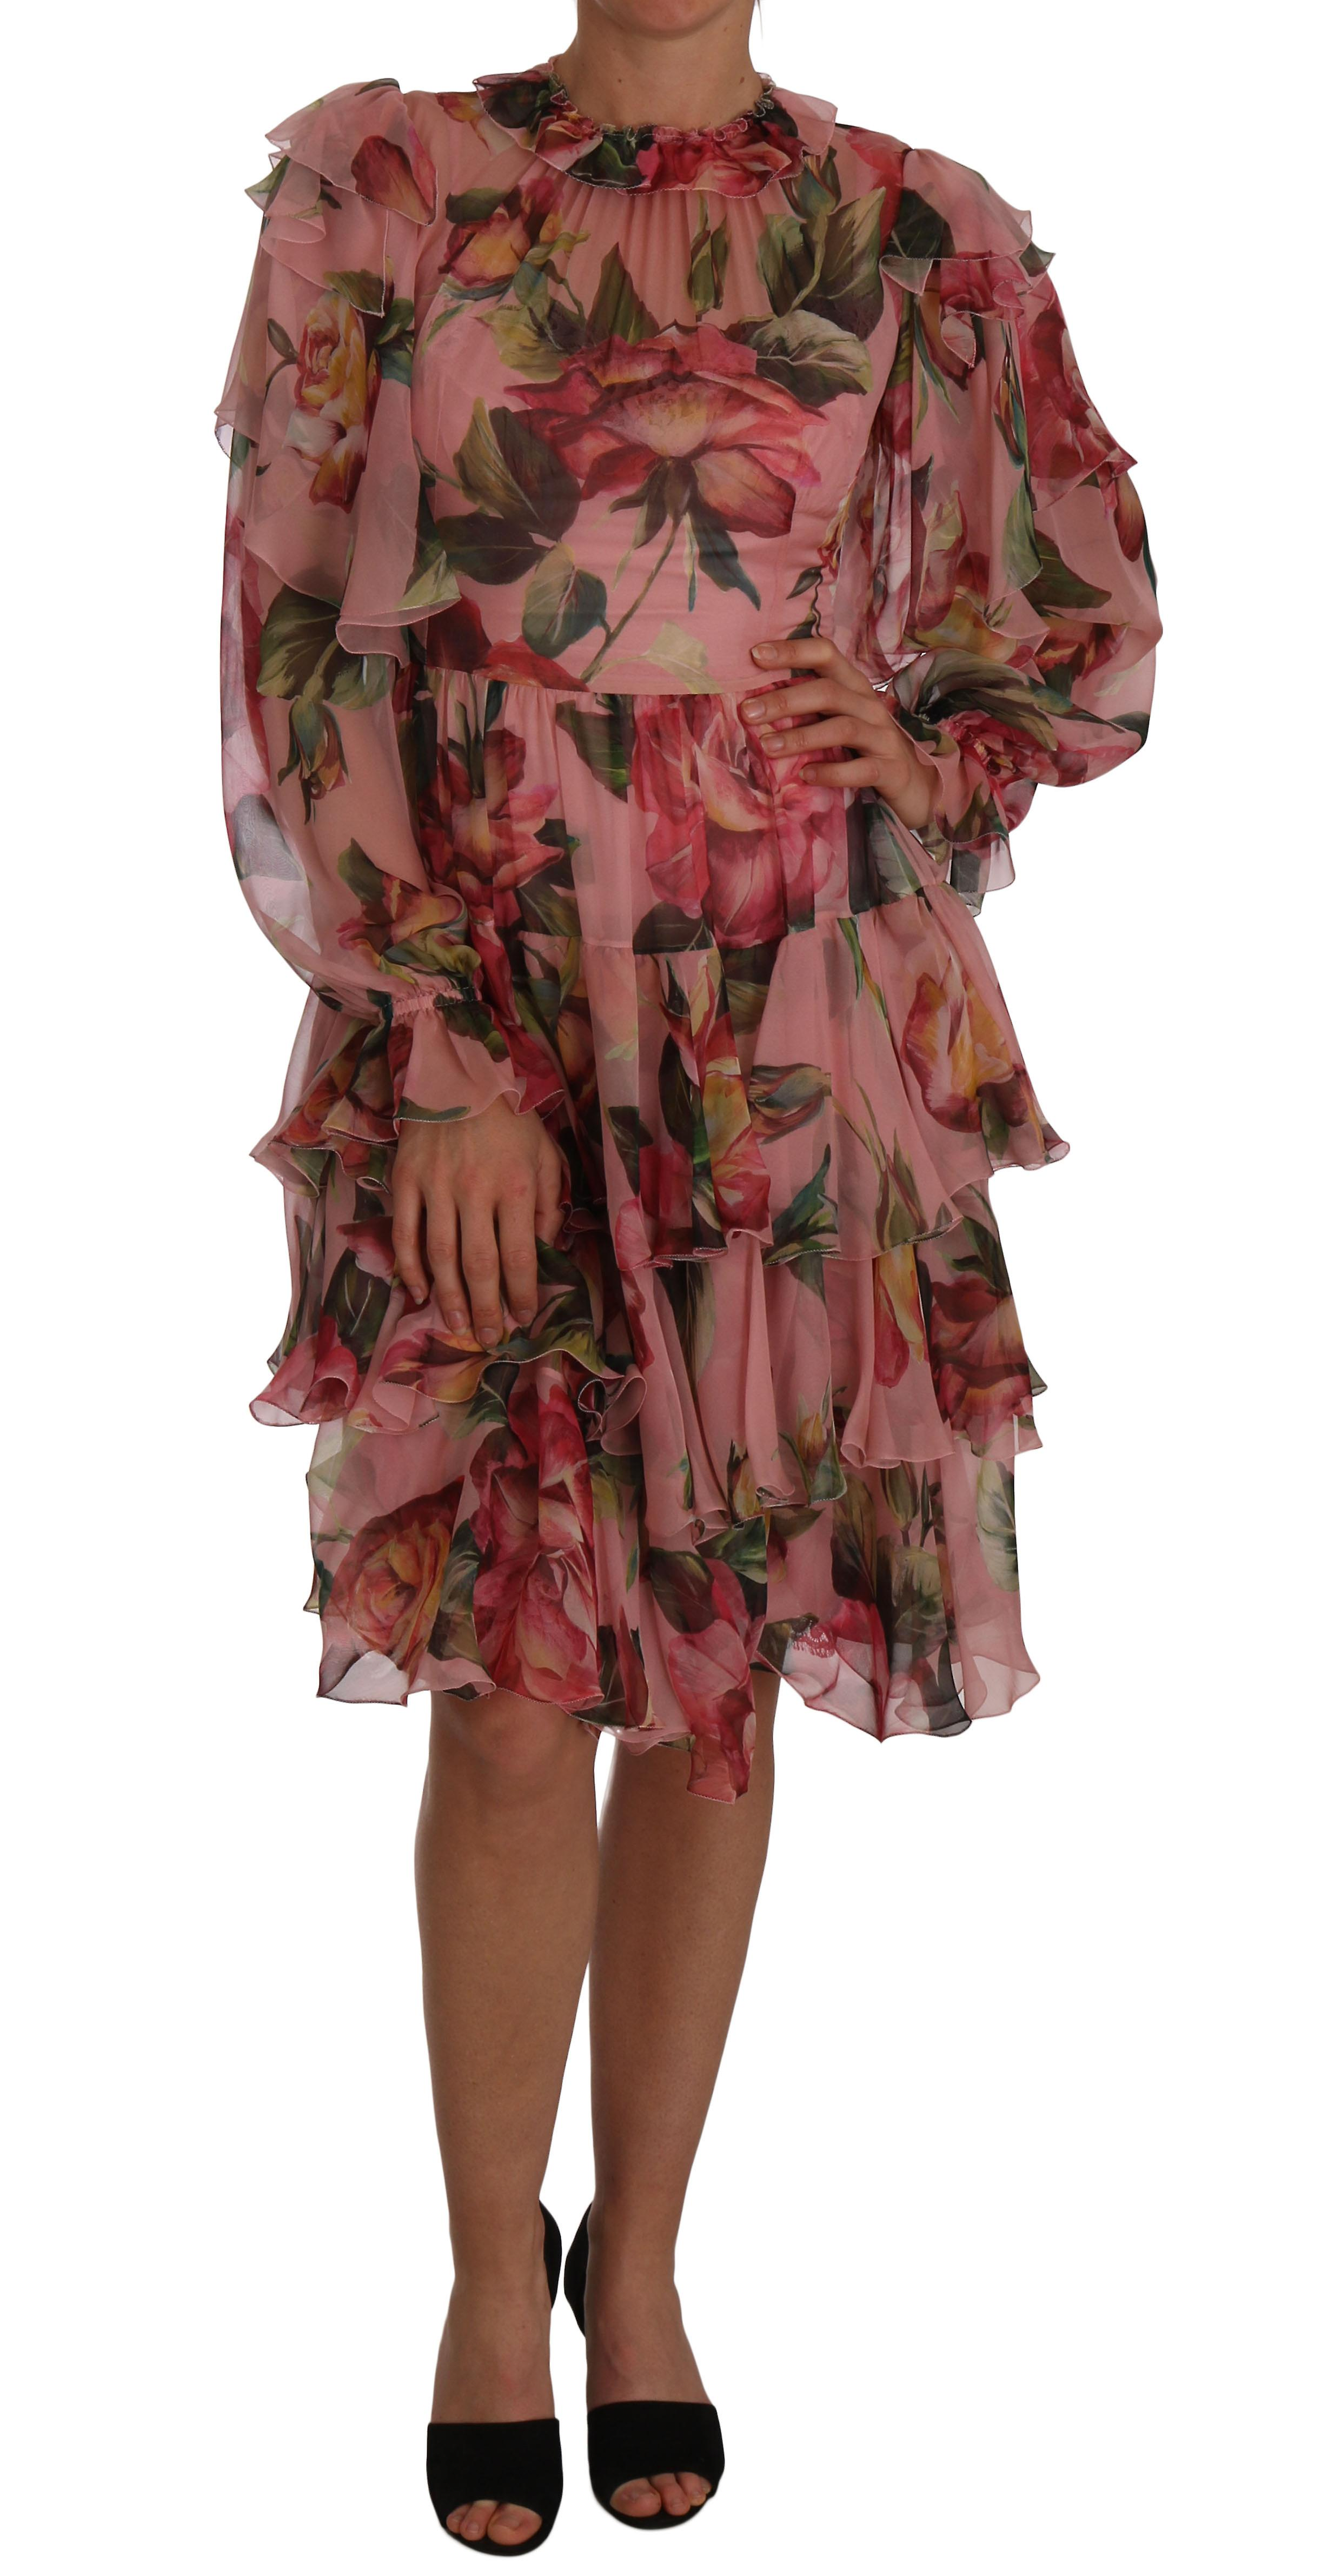 Pink Floral Roses A-Line Shift Gown